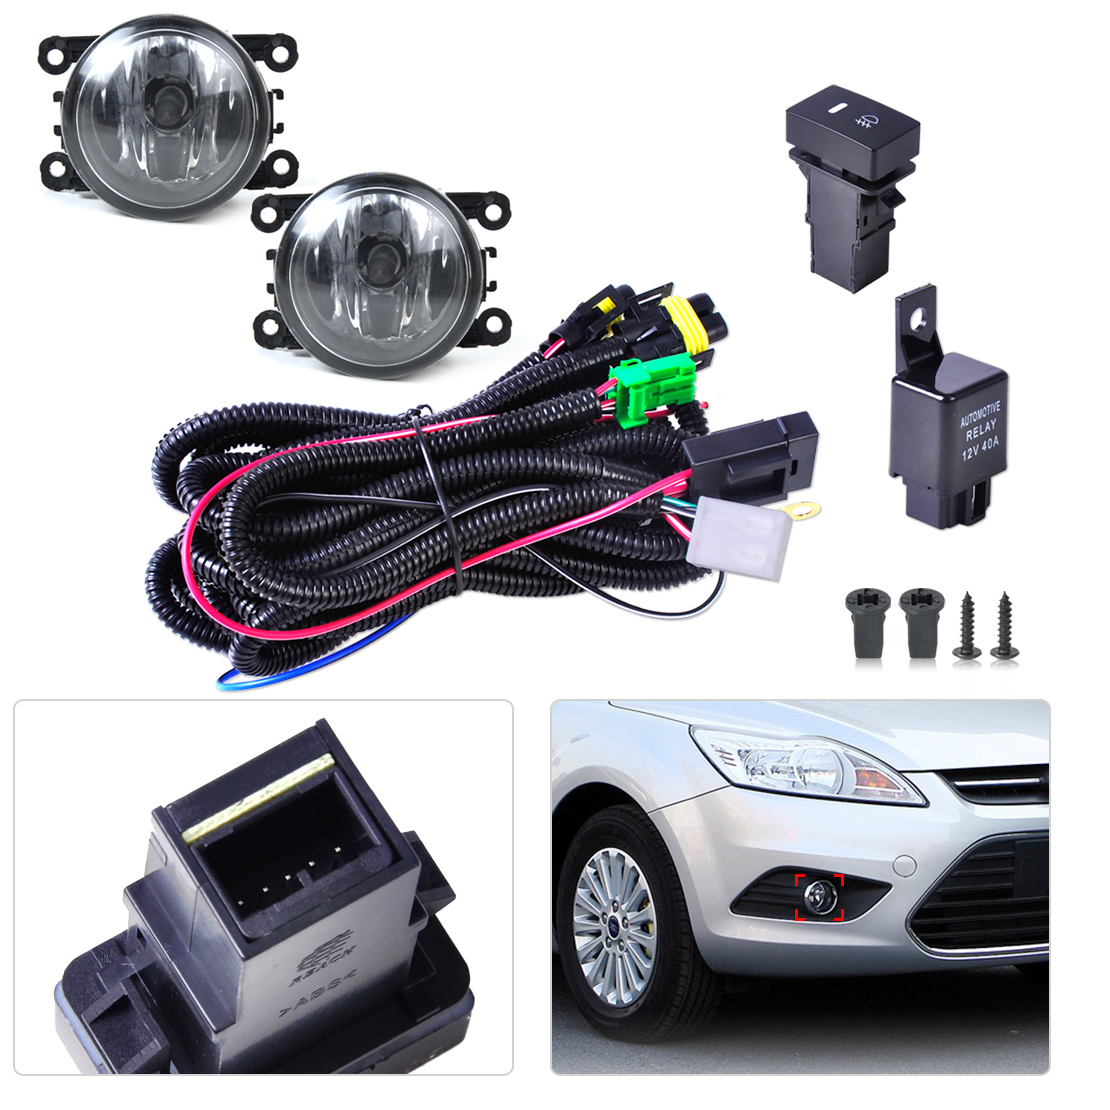 popular mustang harness buy cheap mustang harness lots from china Ford Mustang Wiring Harness new wiring harness sockets switch 2 fog lights h11 lamp 12v 55w 4f9z ford mustang wiring harness